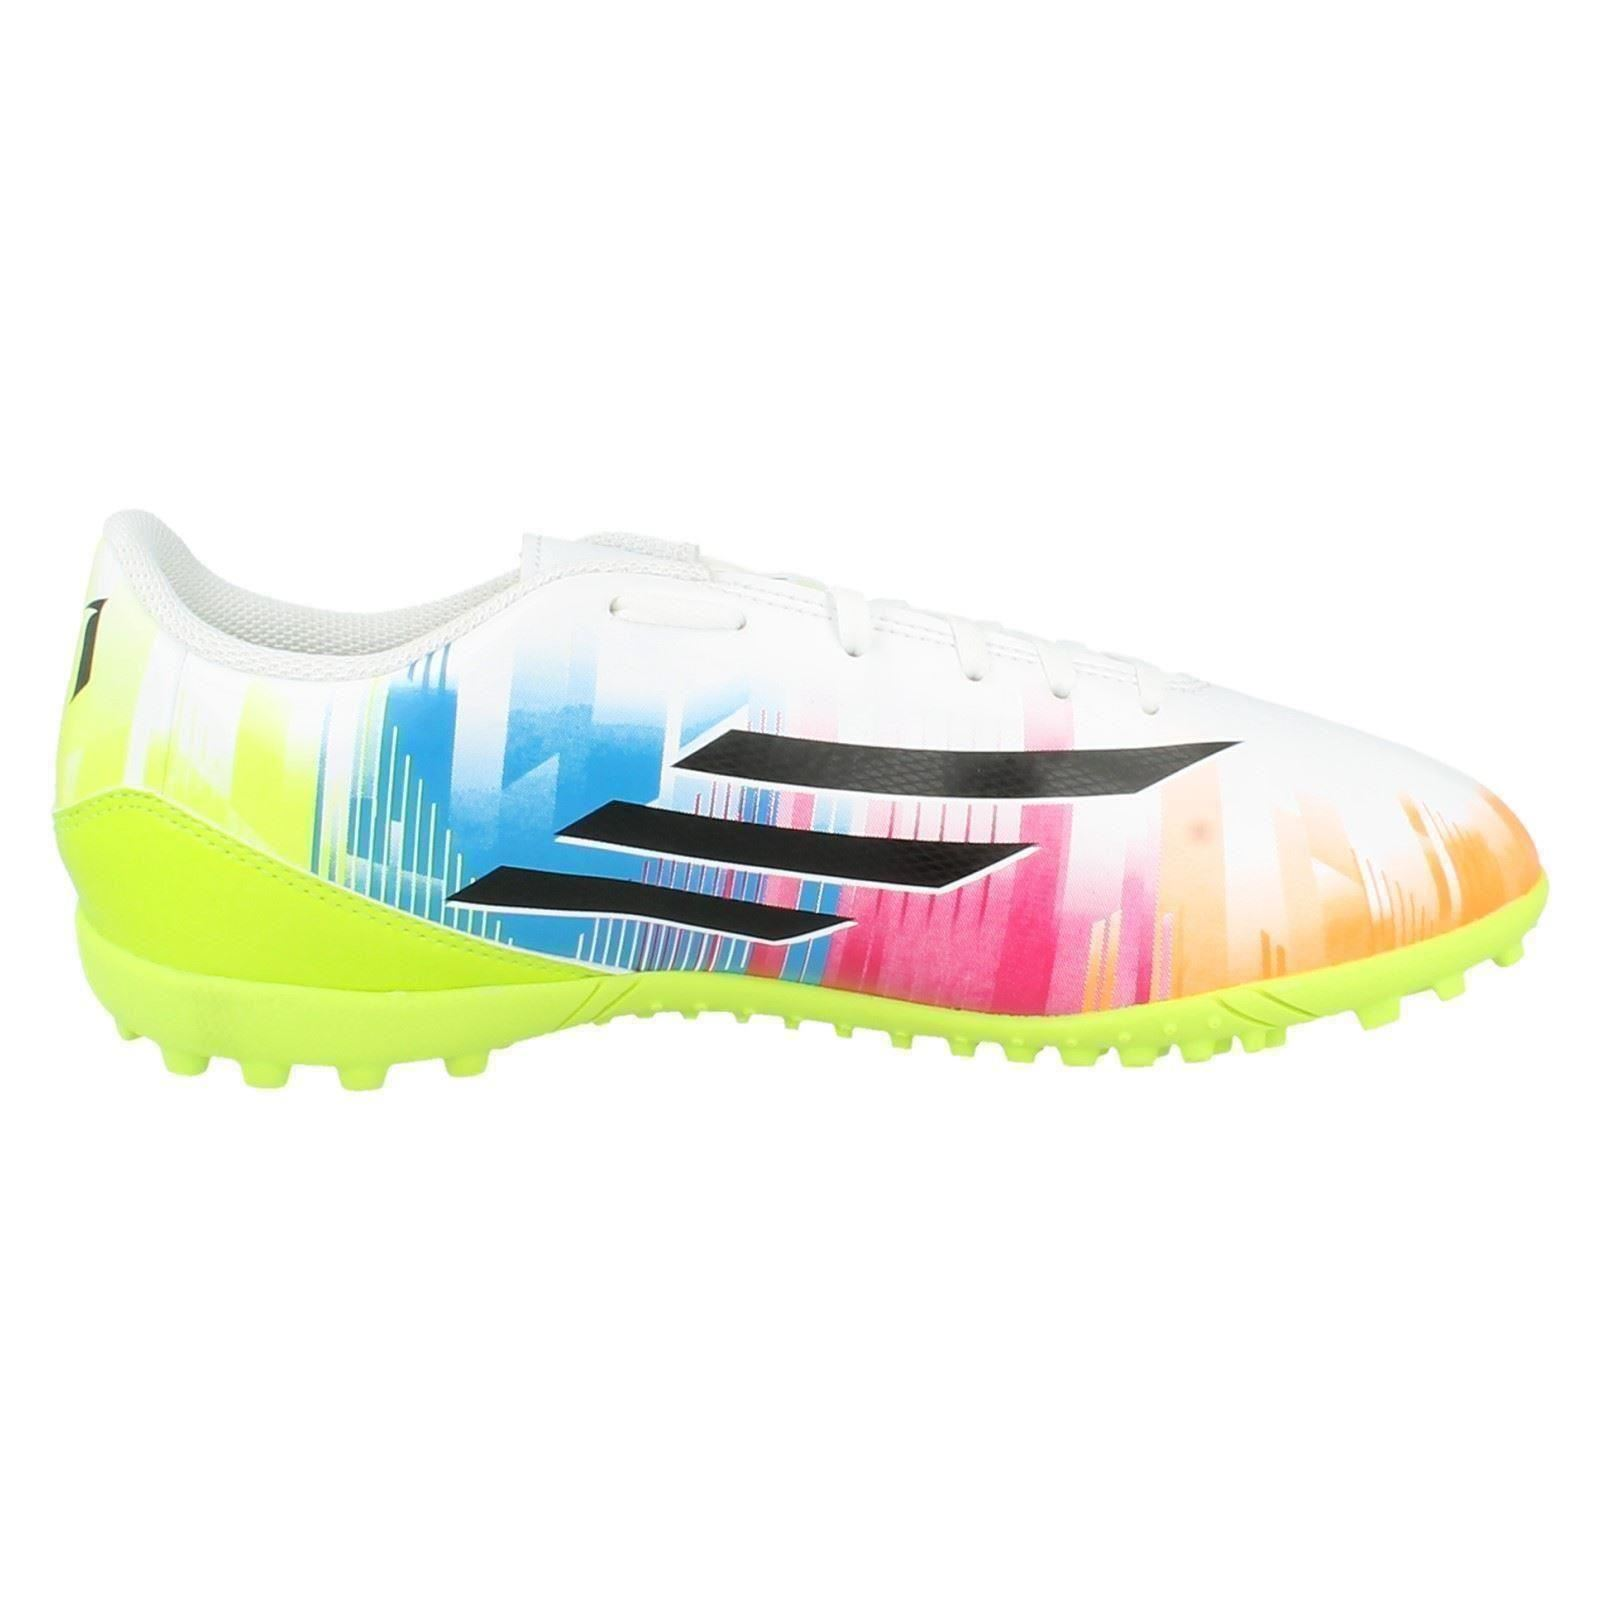 Hommes Adidas Baskets Style - F5 Trx Tf Messi